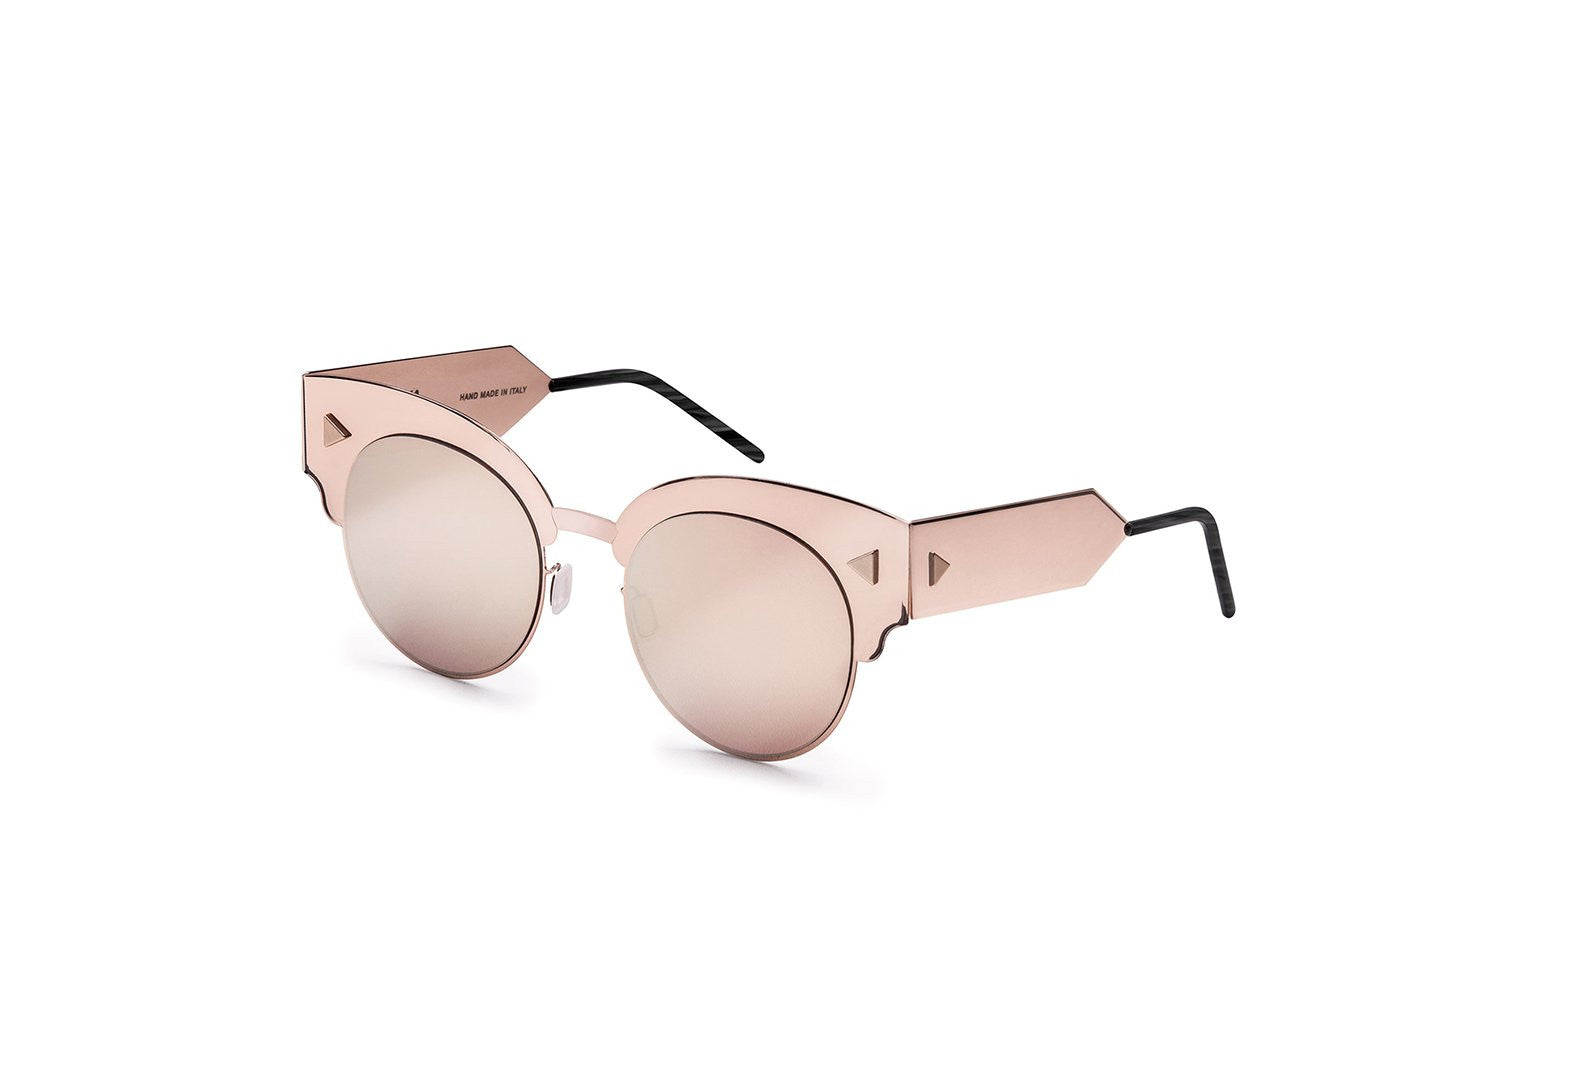 Milky Way Sunglasses